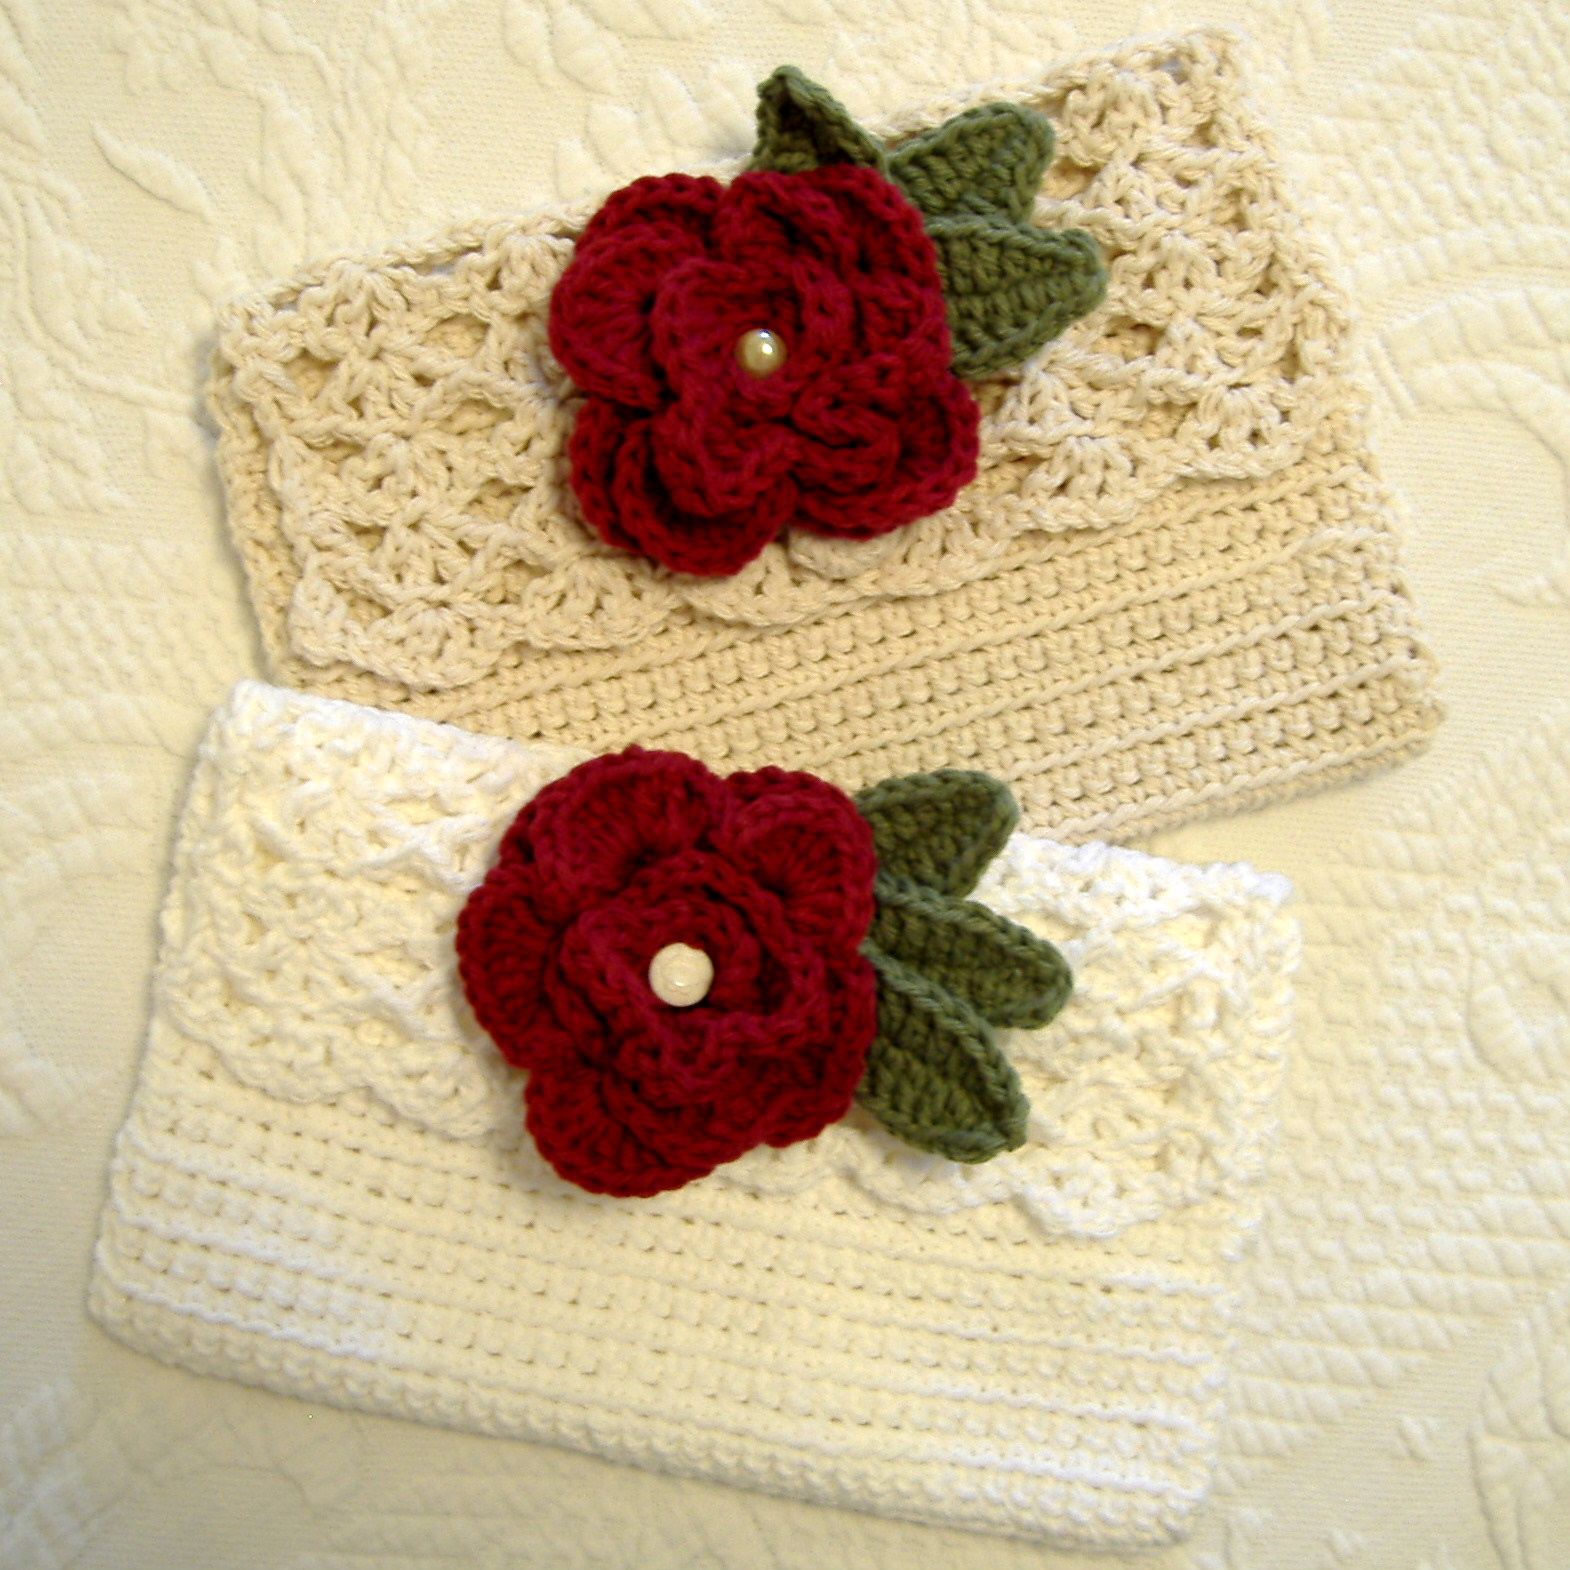 Crochet Purse Ideas : CROCHET PATTERNS PURSES ? Patterns